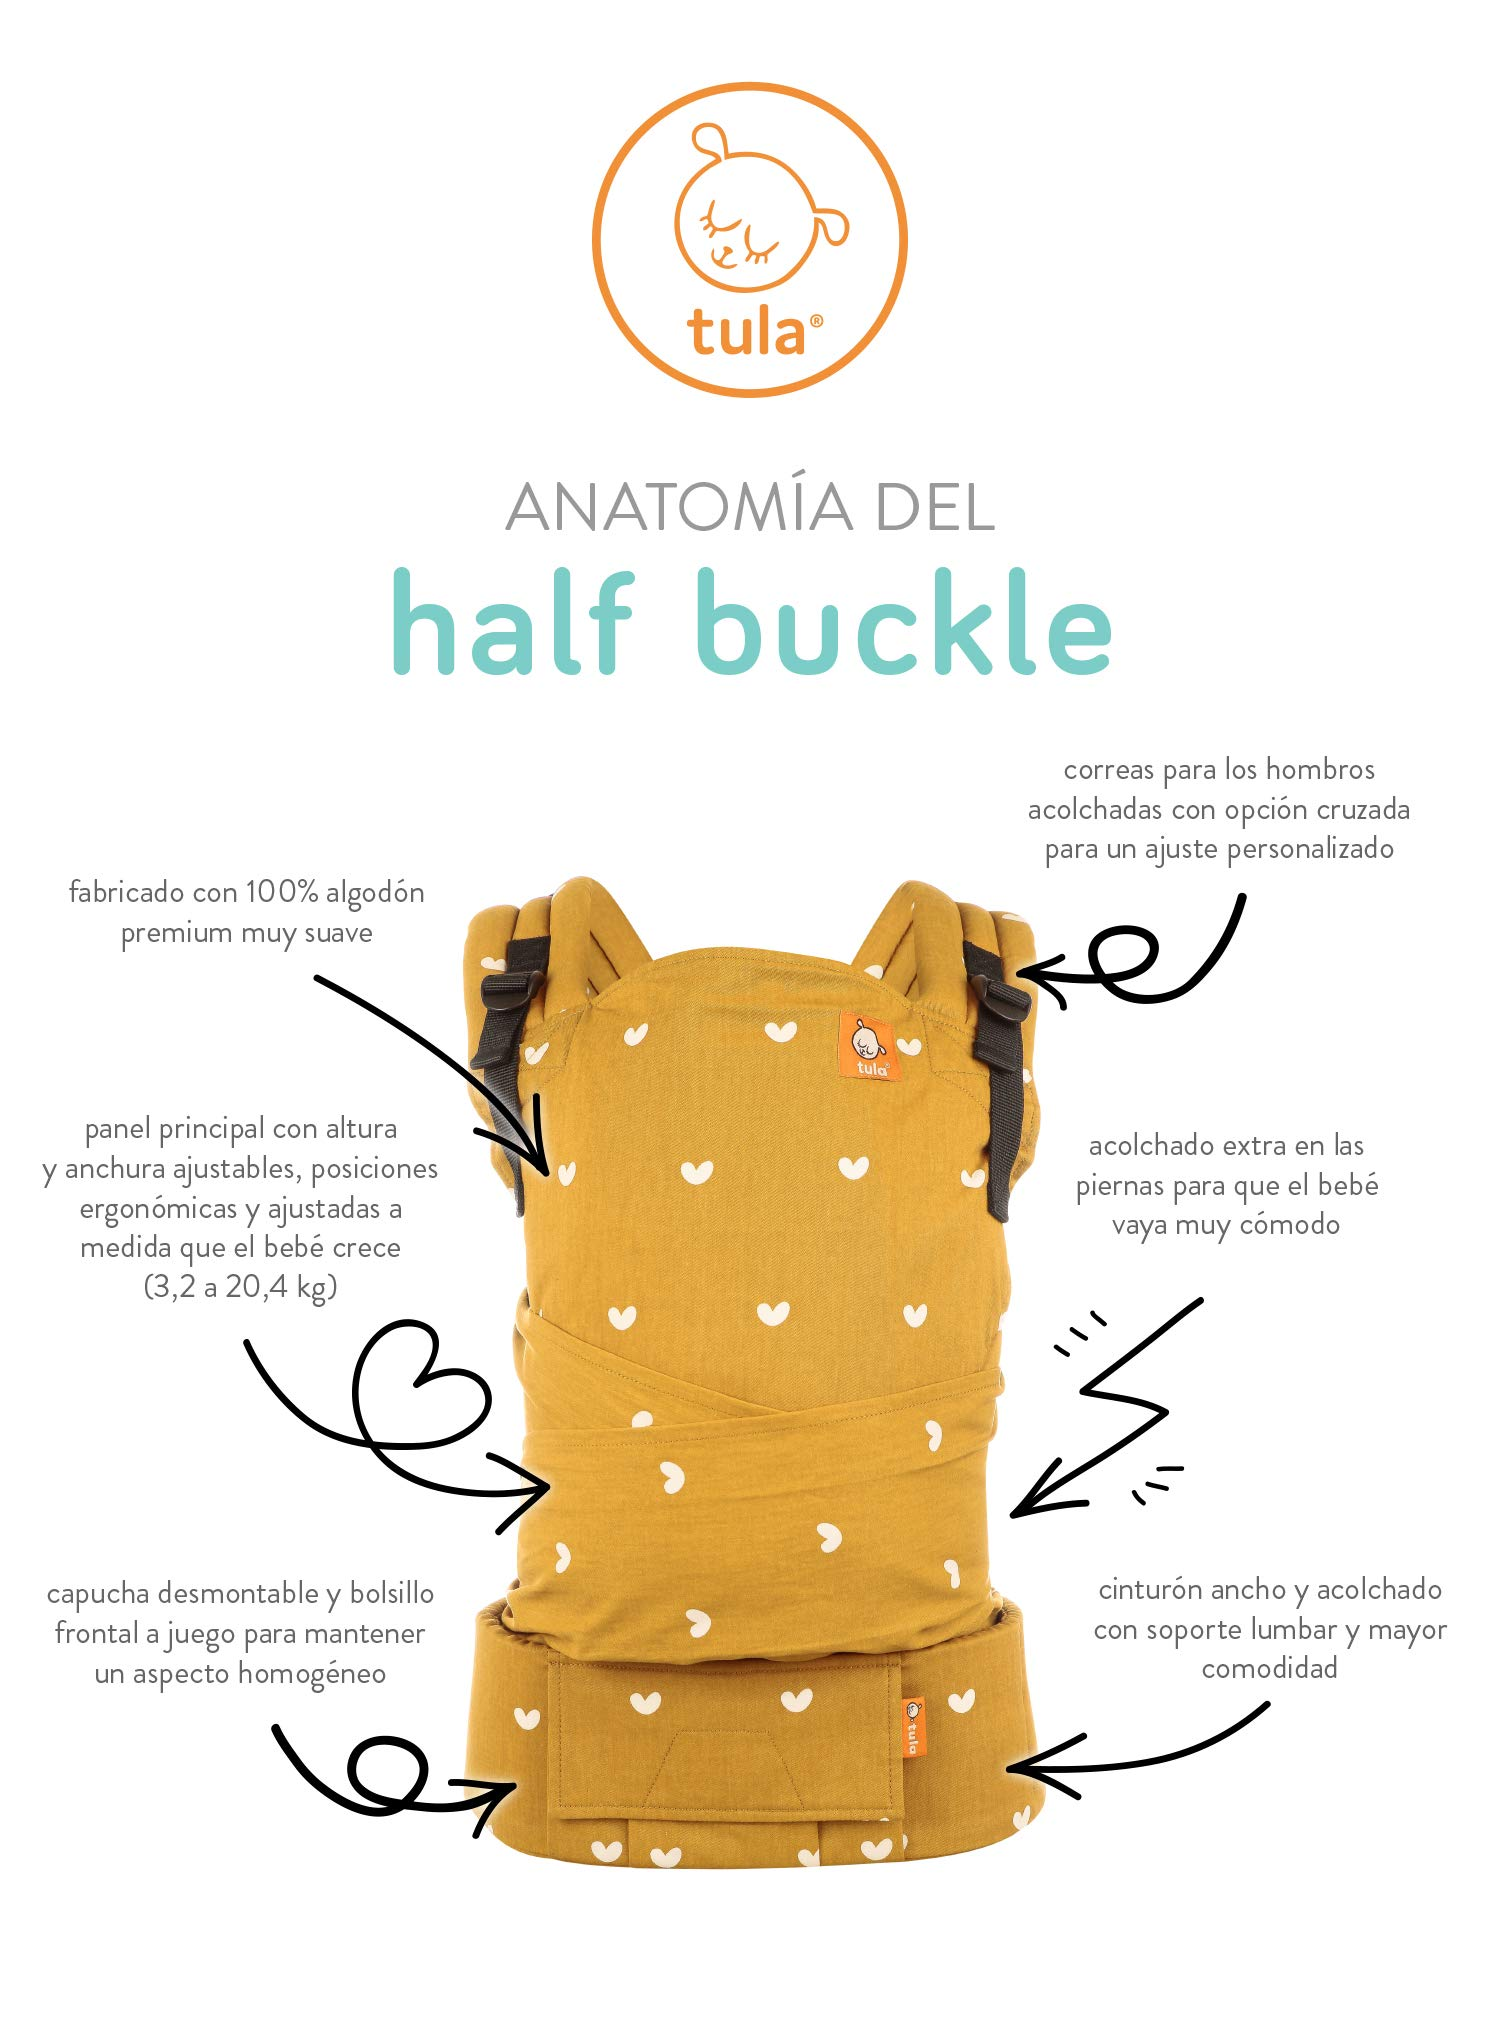 Tula Half Buckle TBCA5G1 Play - Asian Inspired Hybrid Baby Carrier with Padded Shoulder Straps with Crossover Option for Babies 3 2 to 20 4 kg Tula Multiple door positions: front inward, hip and back EASILY ADJUSTABLE DESIGN: Main panel with adjustable height and width, allowing for ergonomic and tight positions as baby grows. For babies from 3, 2 to 20, 4 kg Its long fabric straps wrap around the body allowing for the perfect fit. 7